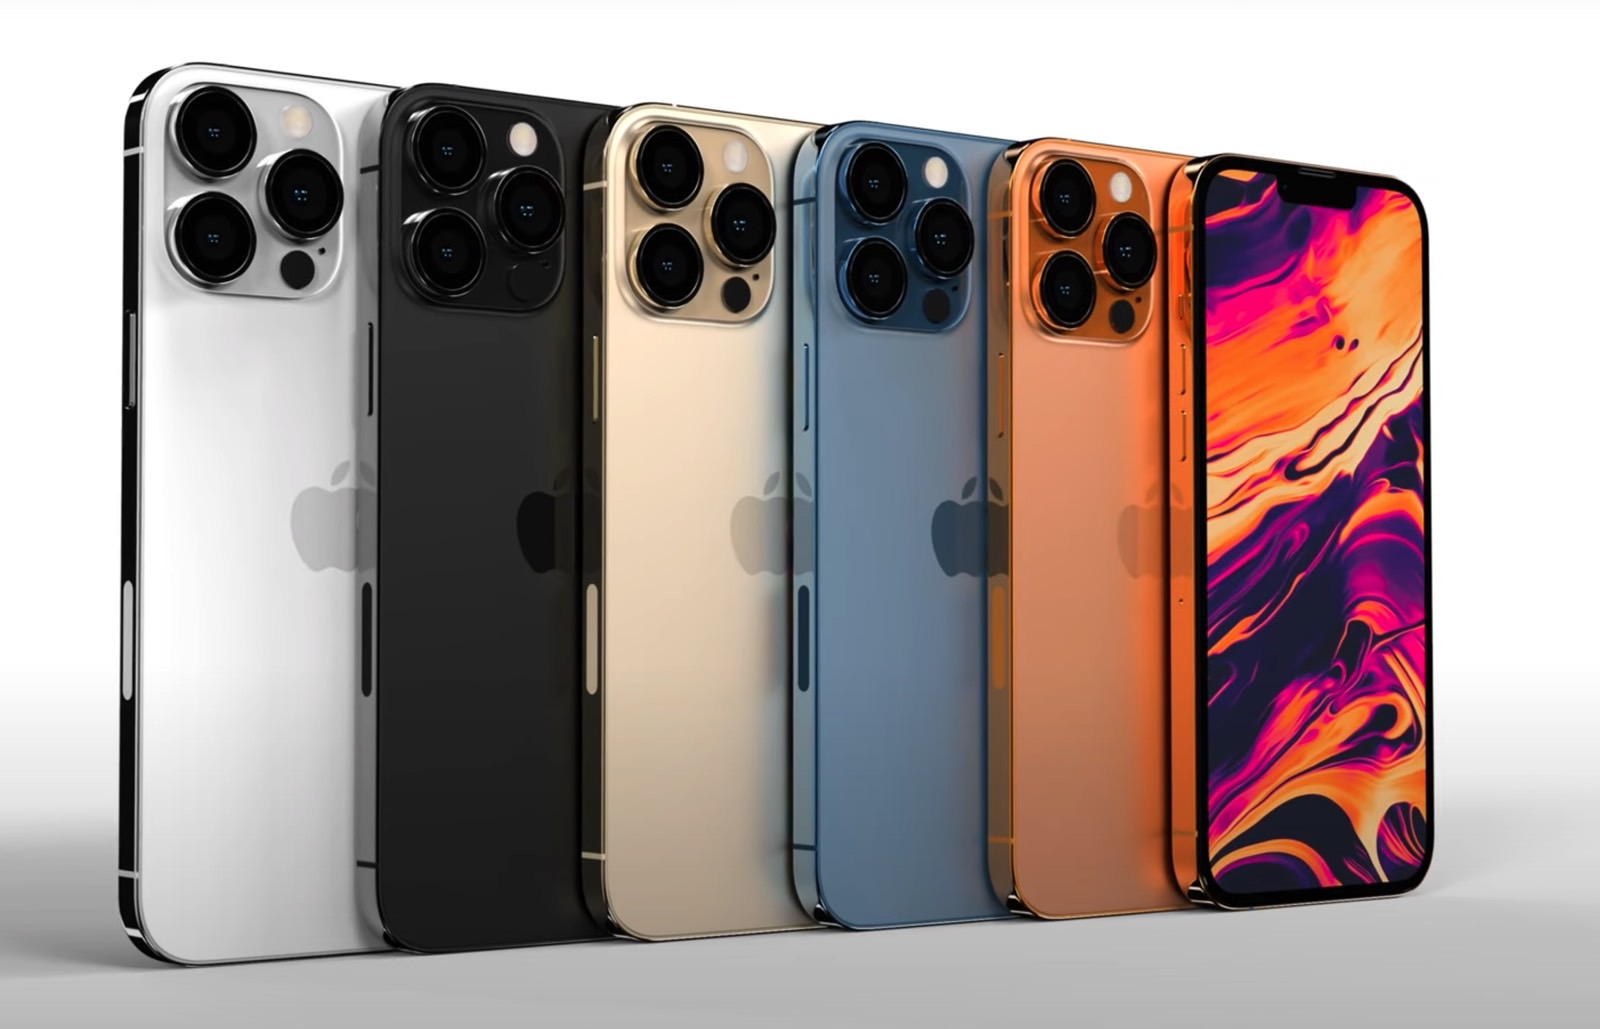 New leak may finally reveal Apple's iPhone 13 prices